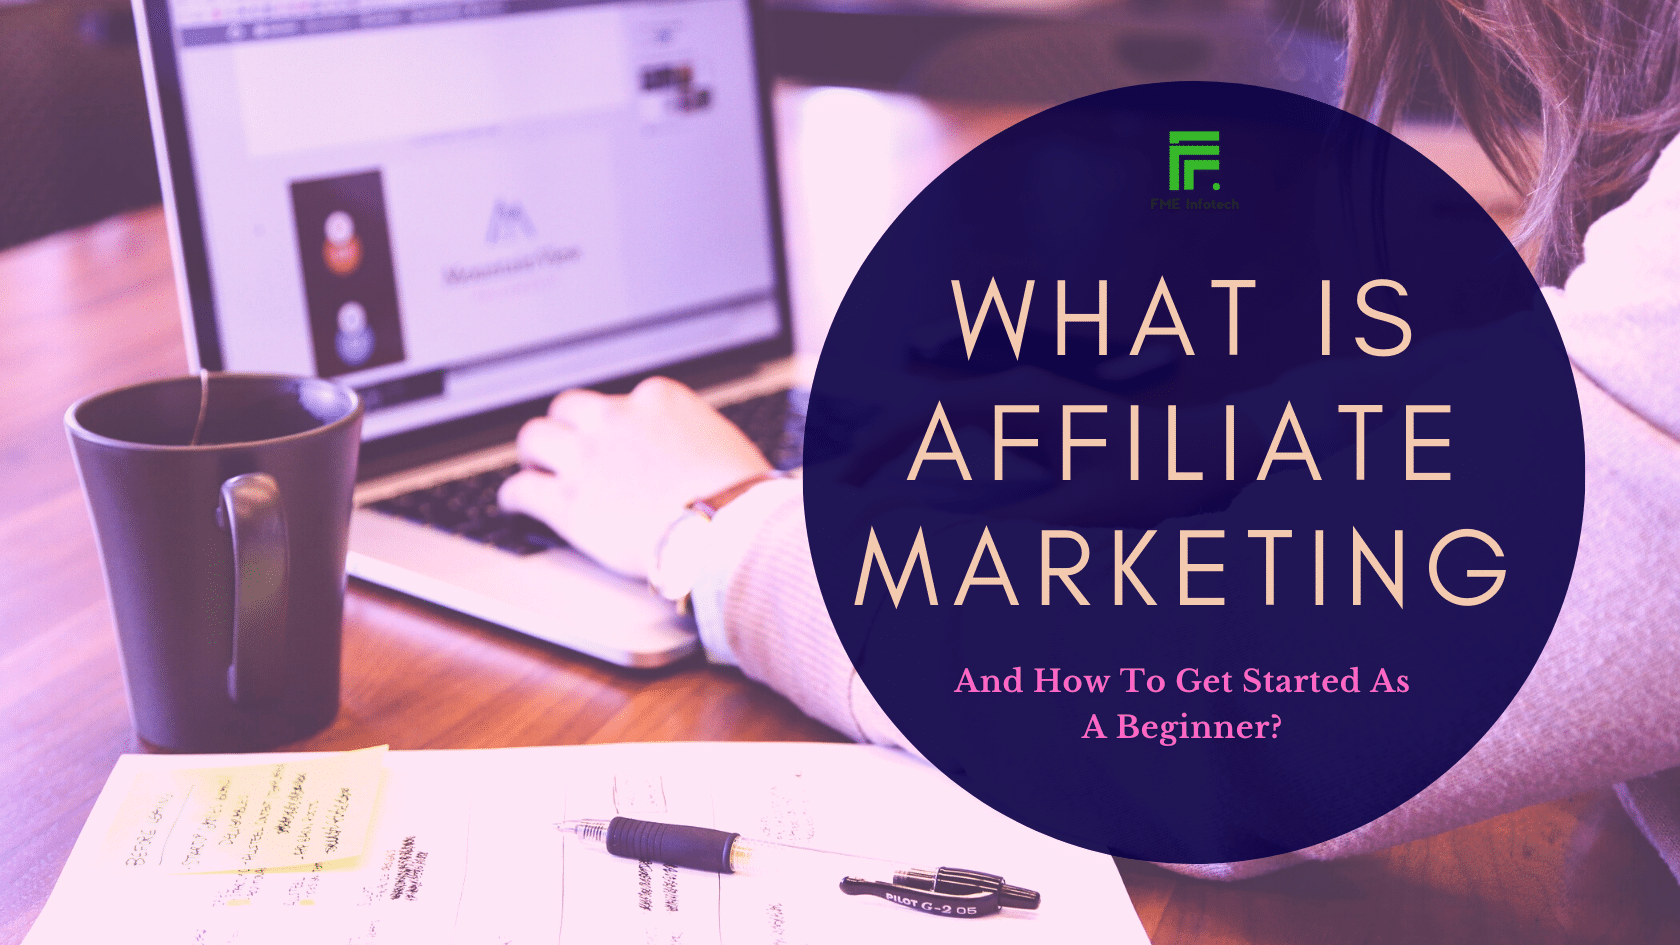 Affiliate Marketing: What Is It And How To Get Started It As A Beginner